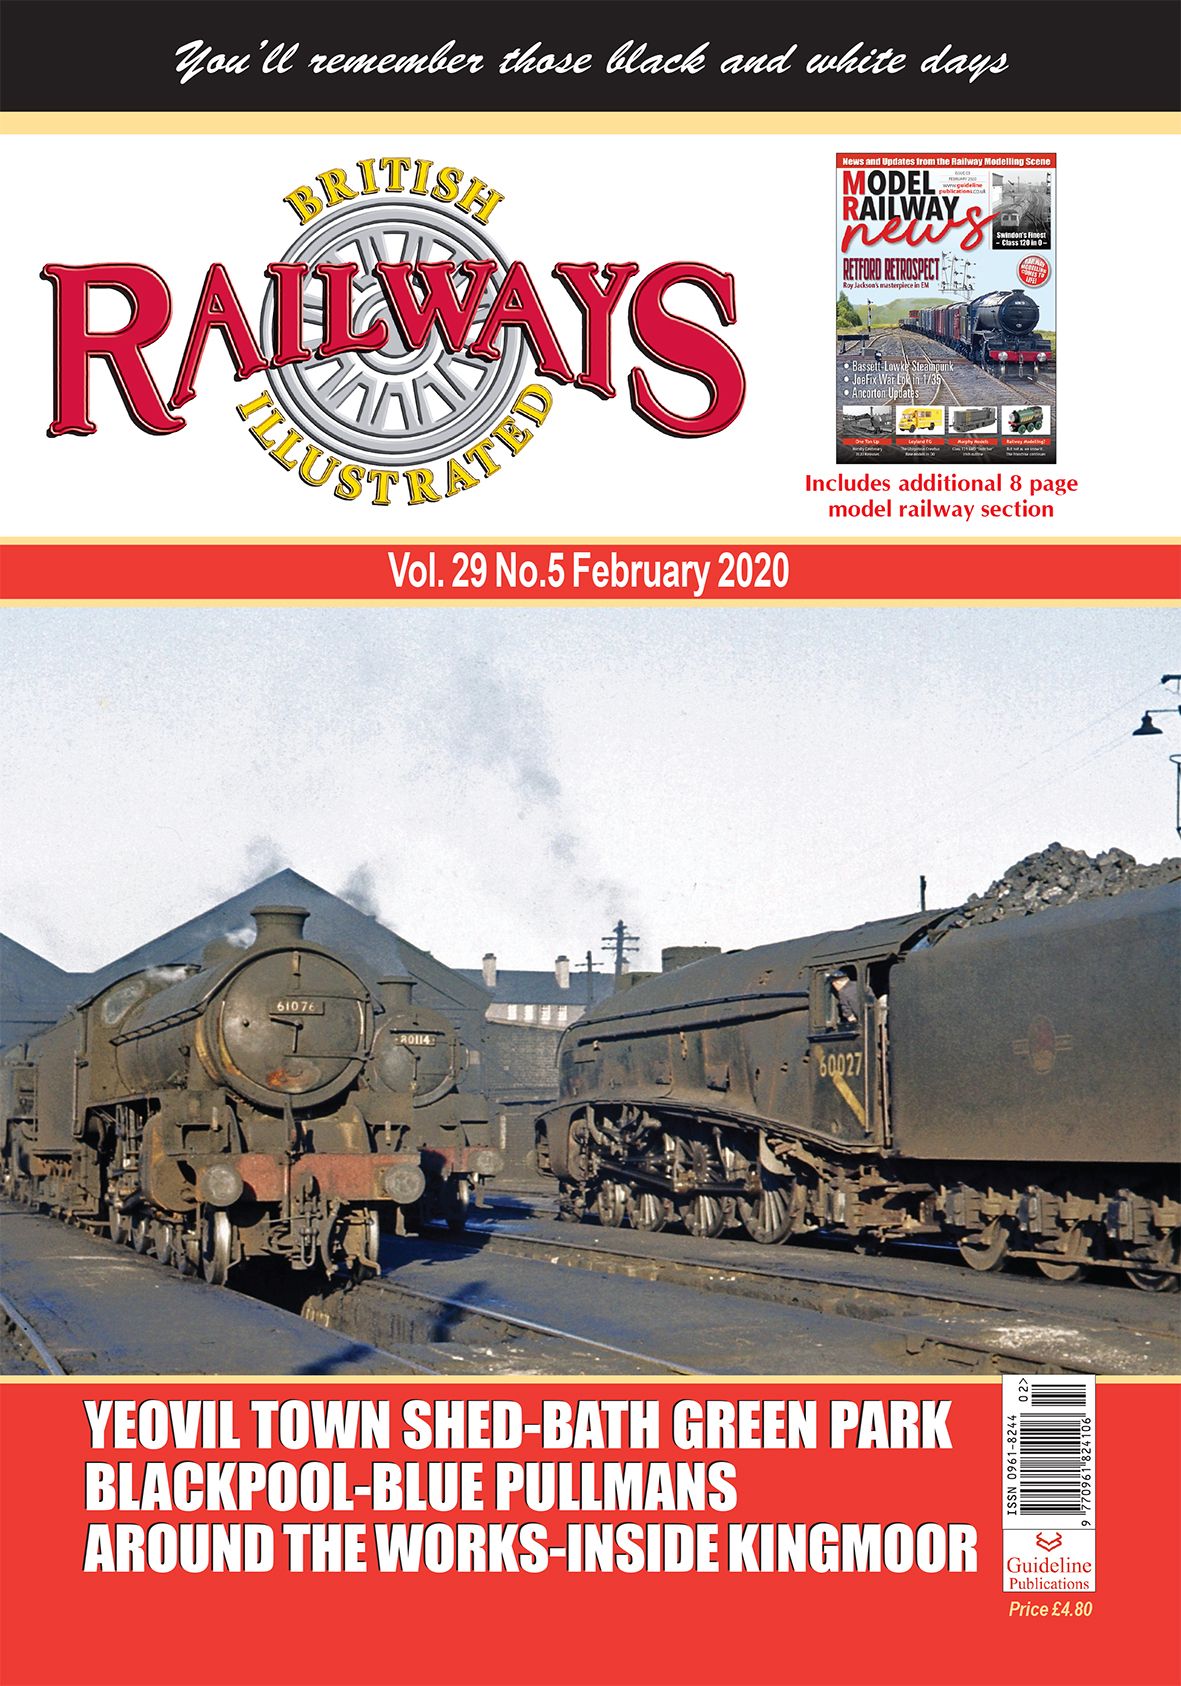 Guideline Publications British Railways Illustrated  vol 29 - 05 February 2020